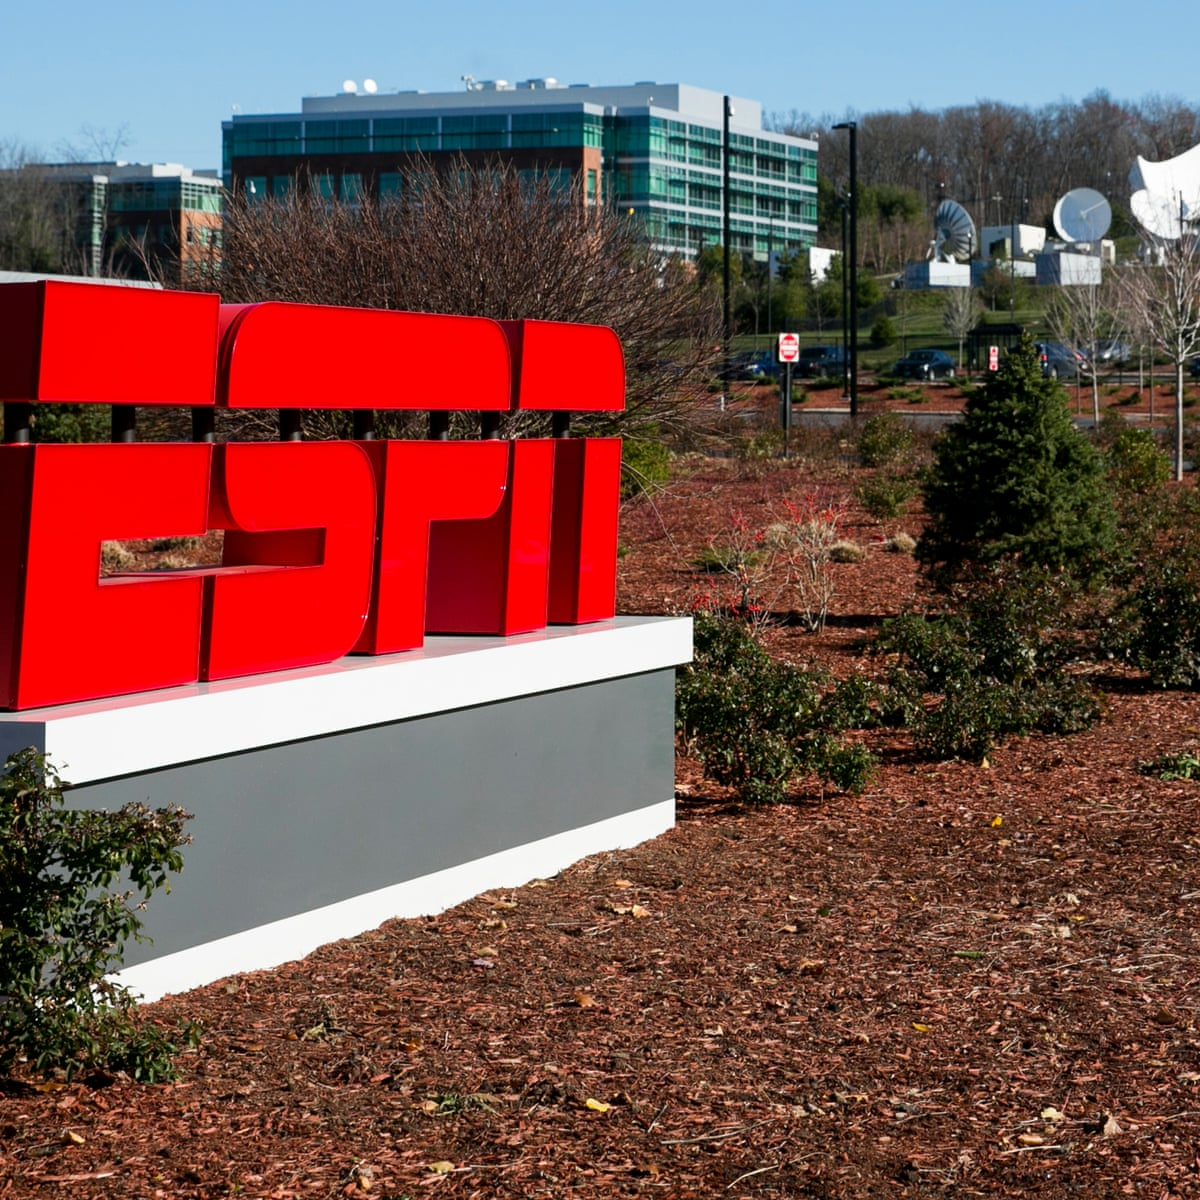 Espn Cuts 150 Jobs As Layoffs Continue At Sports Broadcast Giant Sport The Guardian